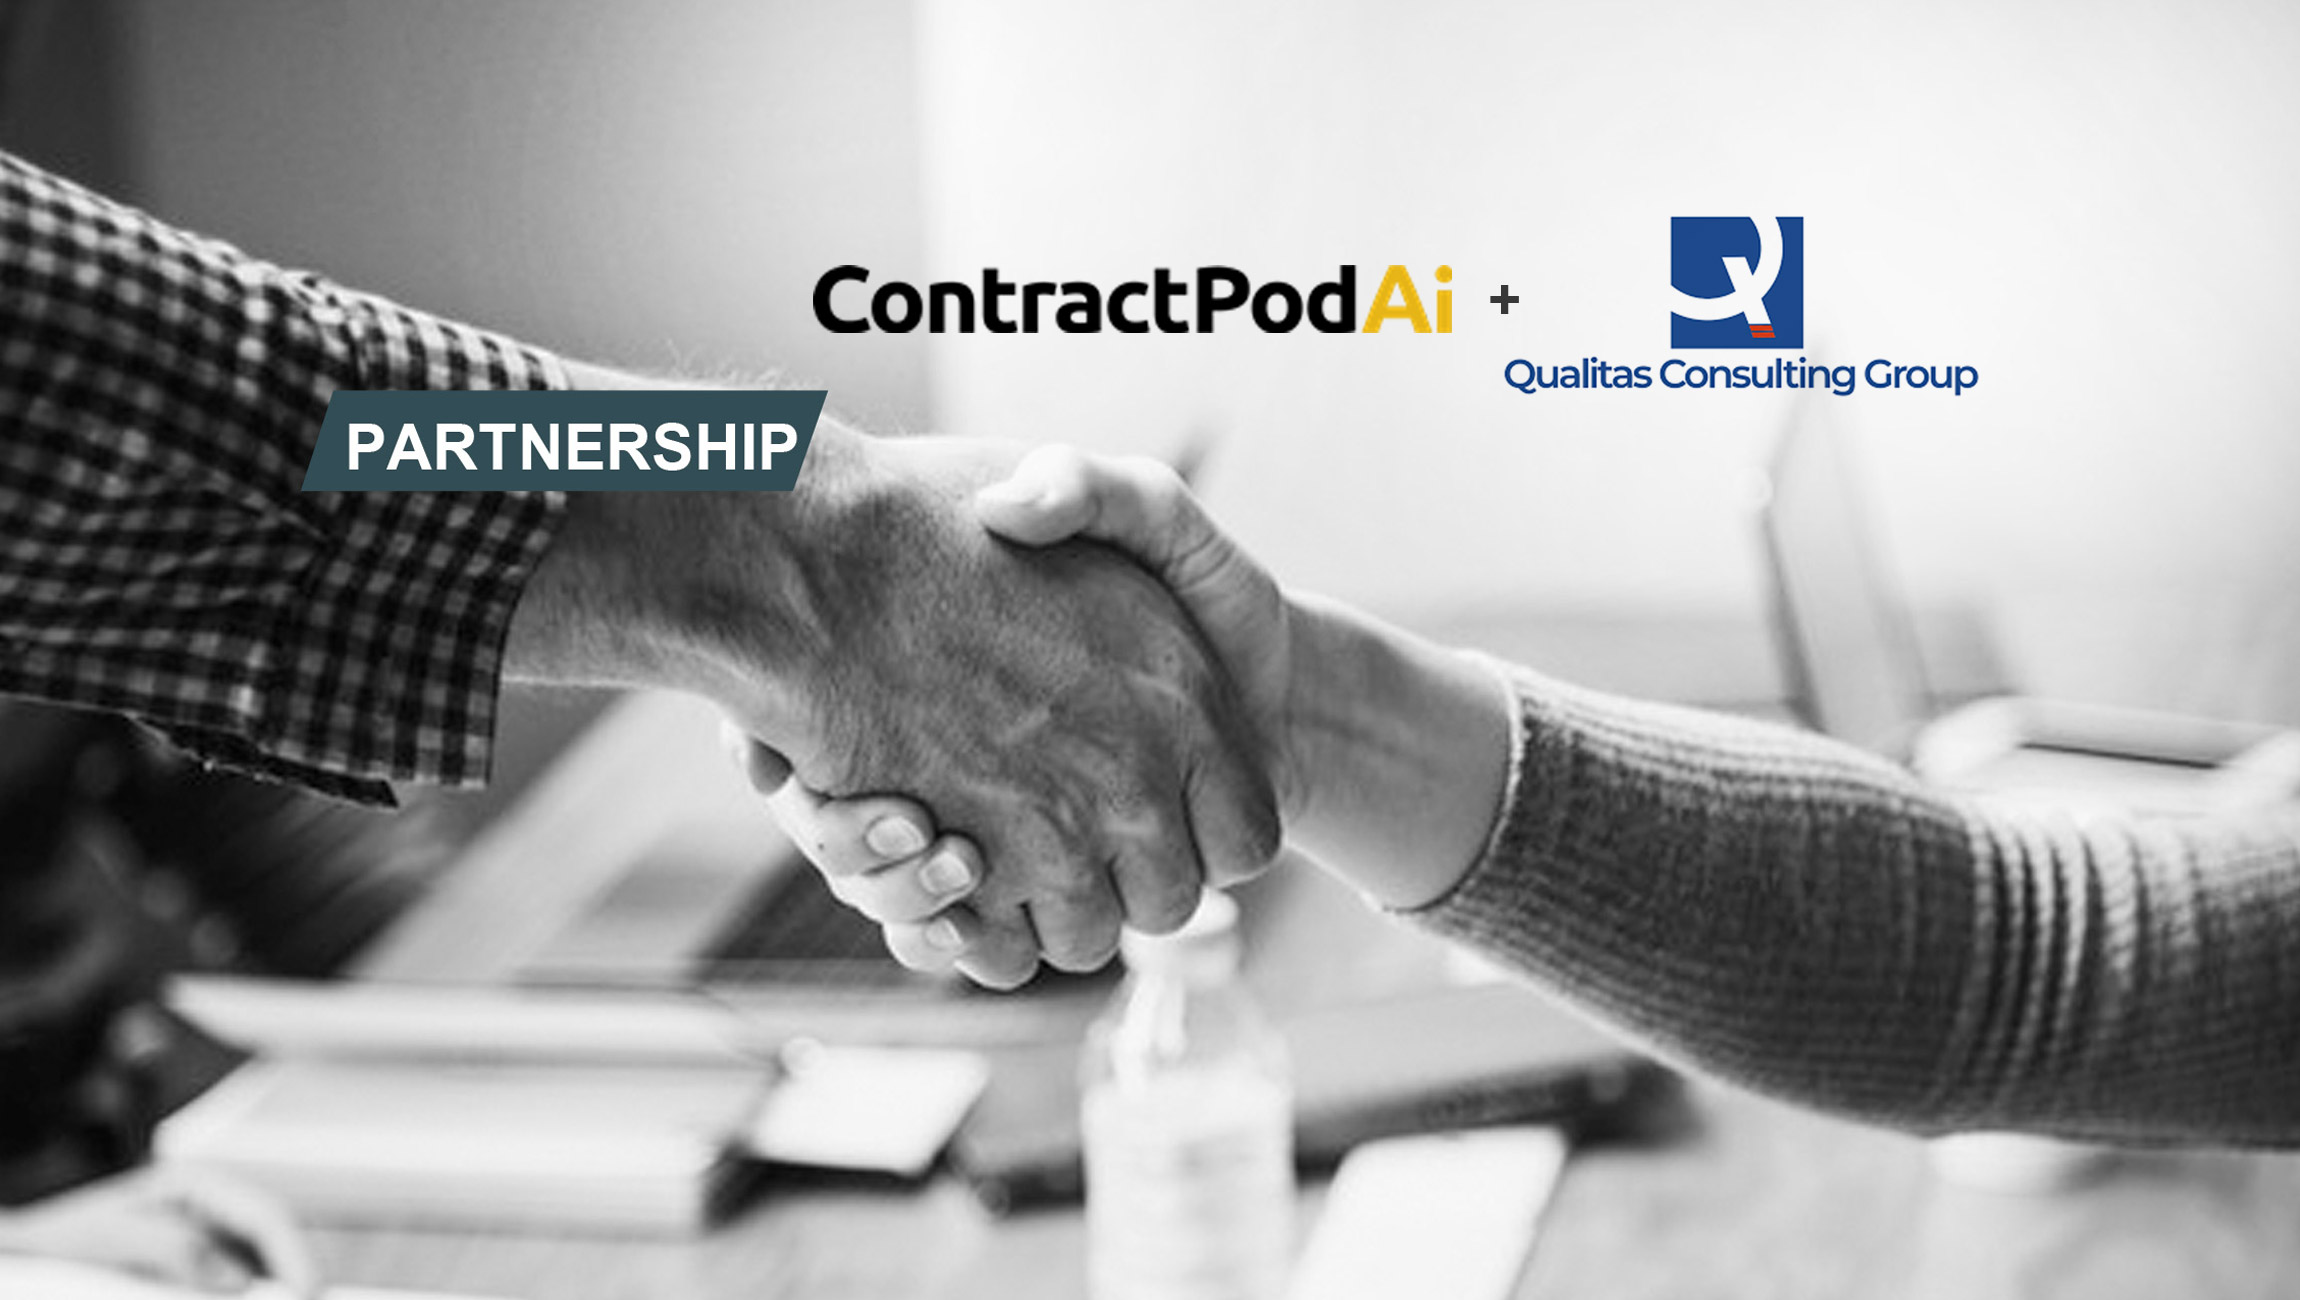 ContractPodAi Partners with Qualitas Consulting Group to Introduce Artificial Intelligence-Powered Contract Management to More Legal Teams